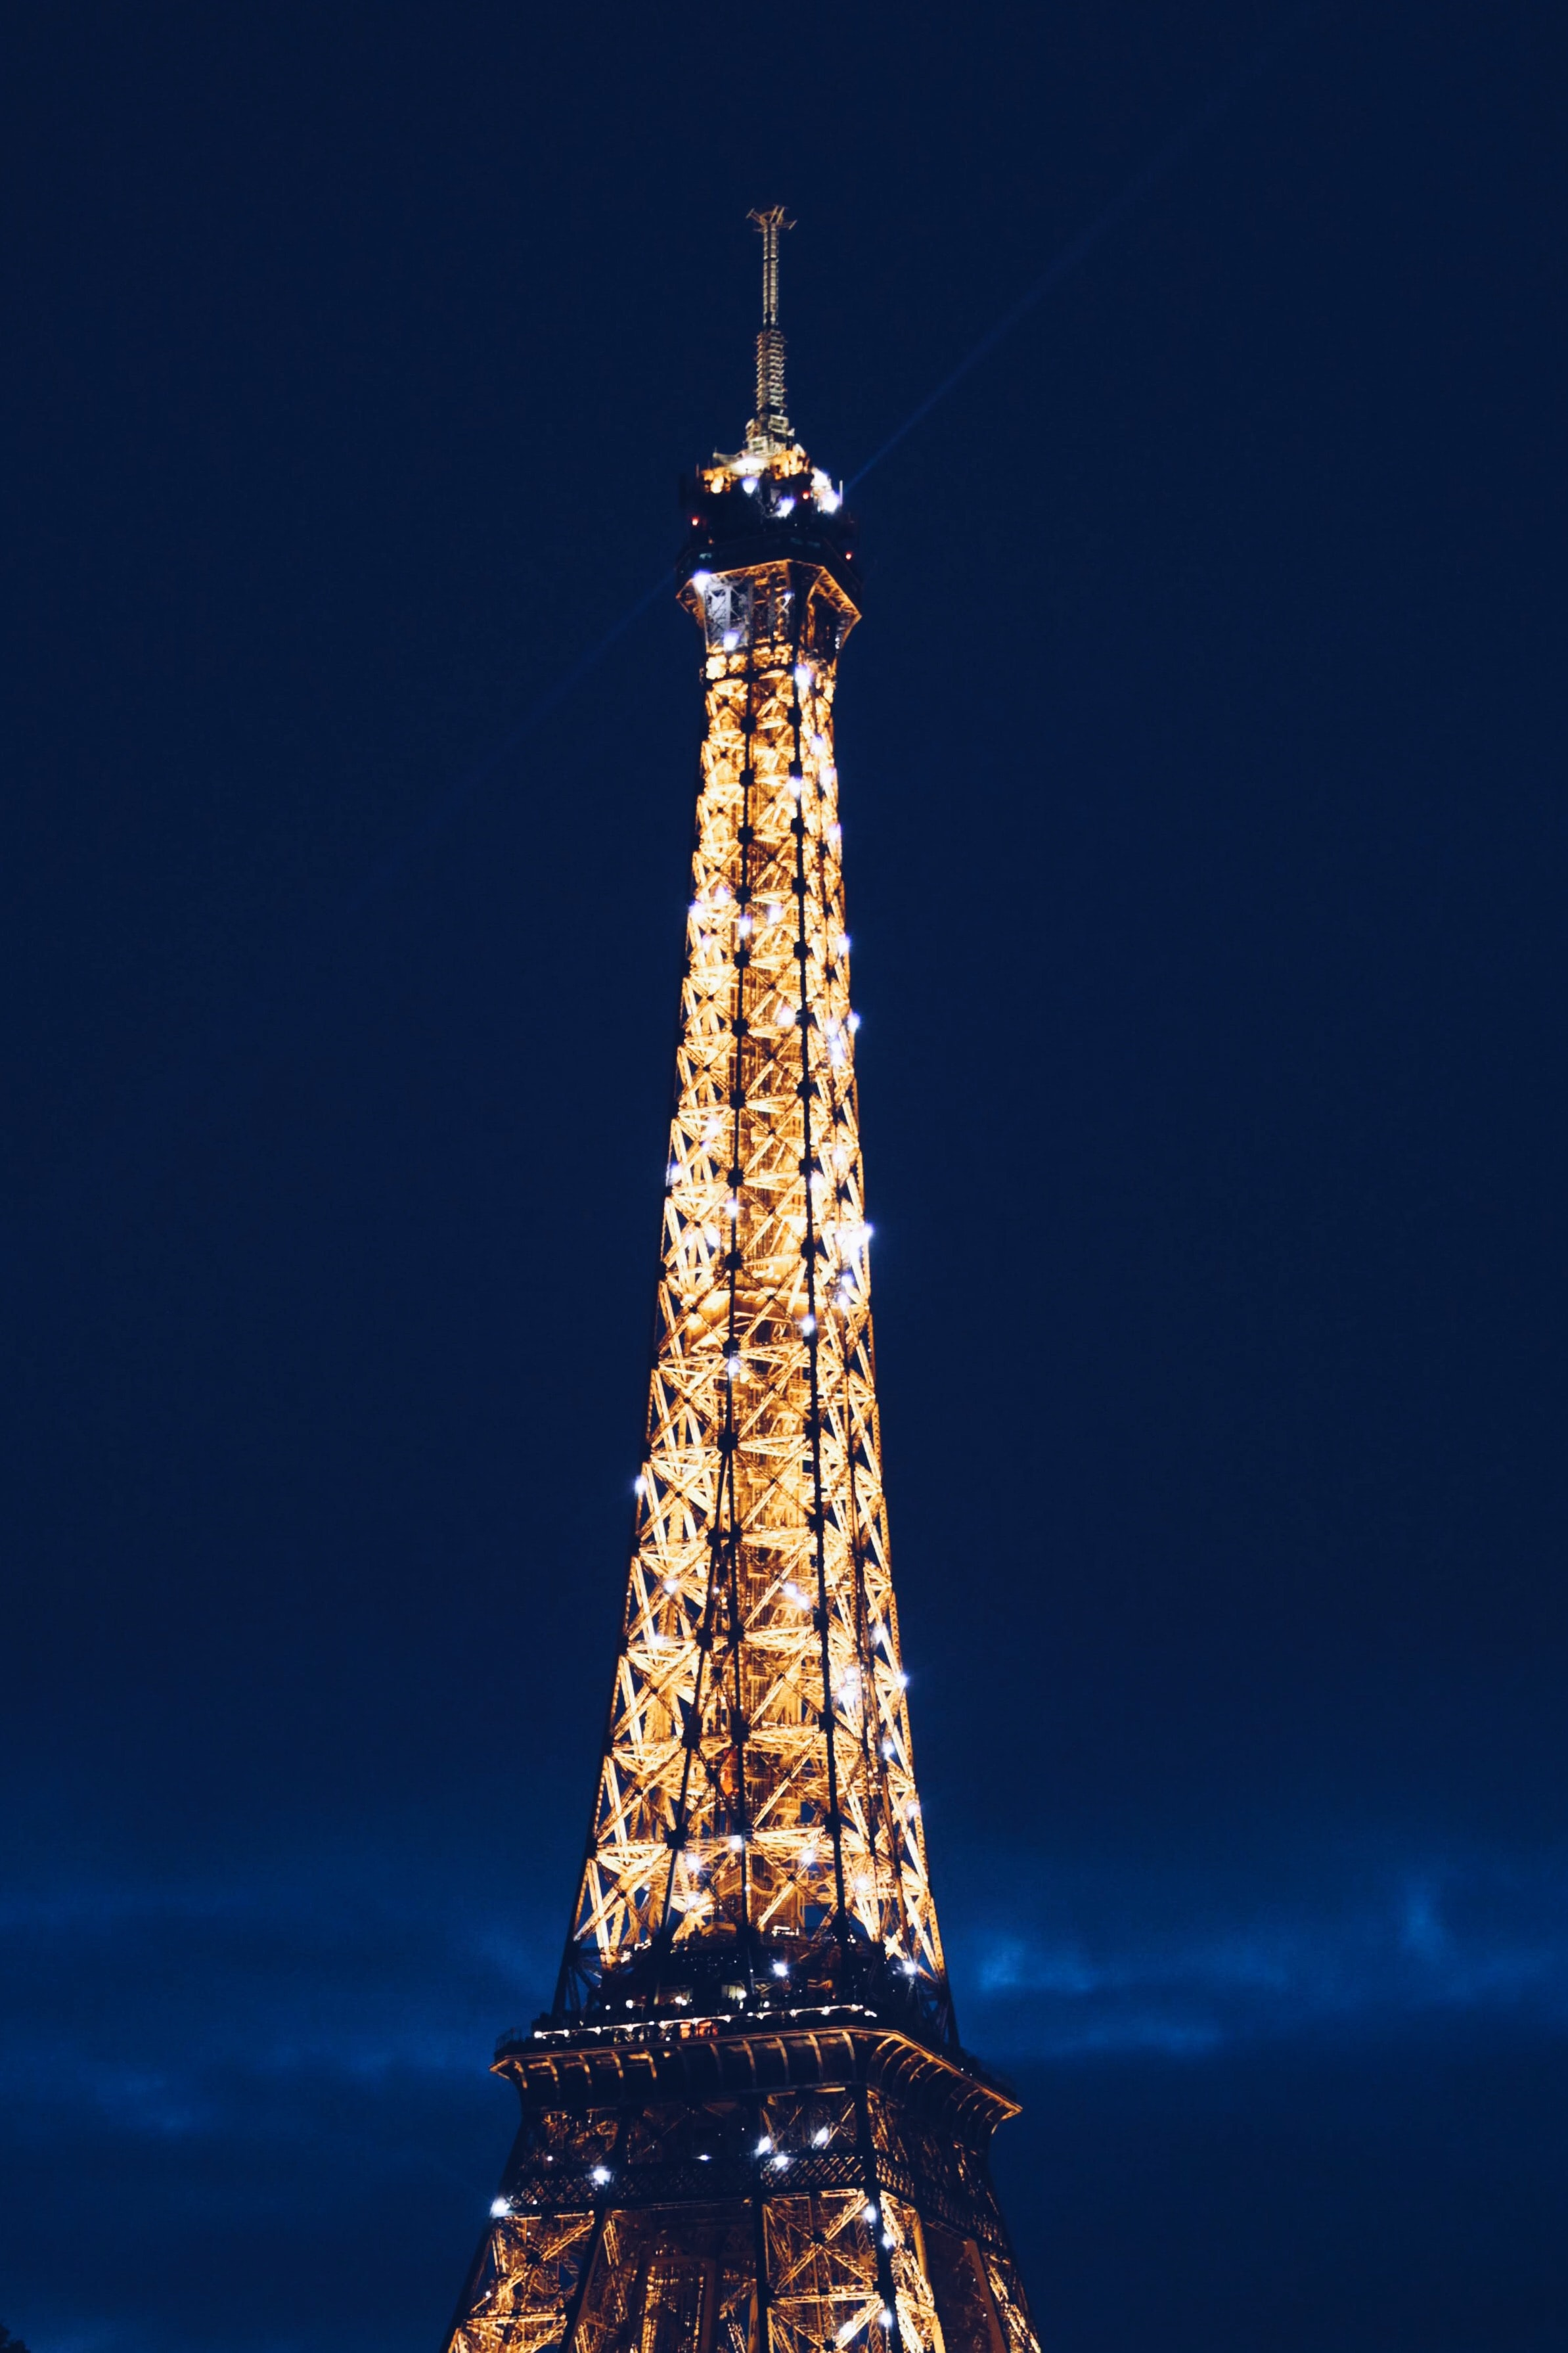 The historic Eiffel Tower illuminated at night.